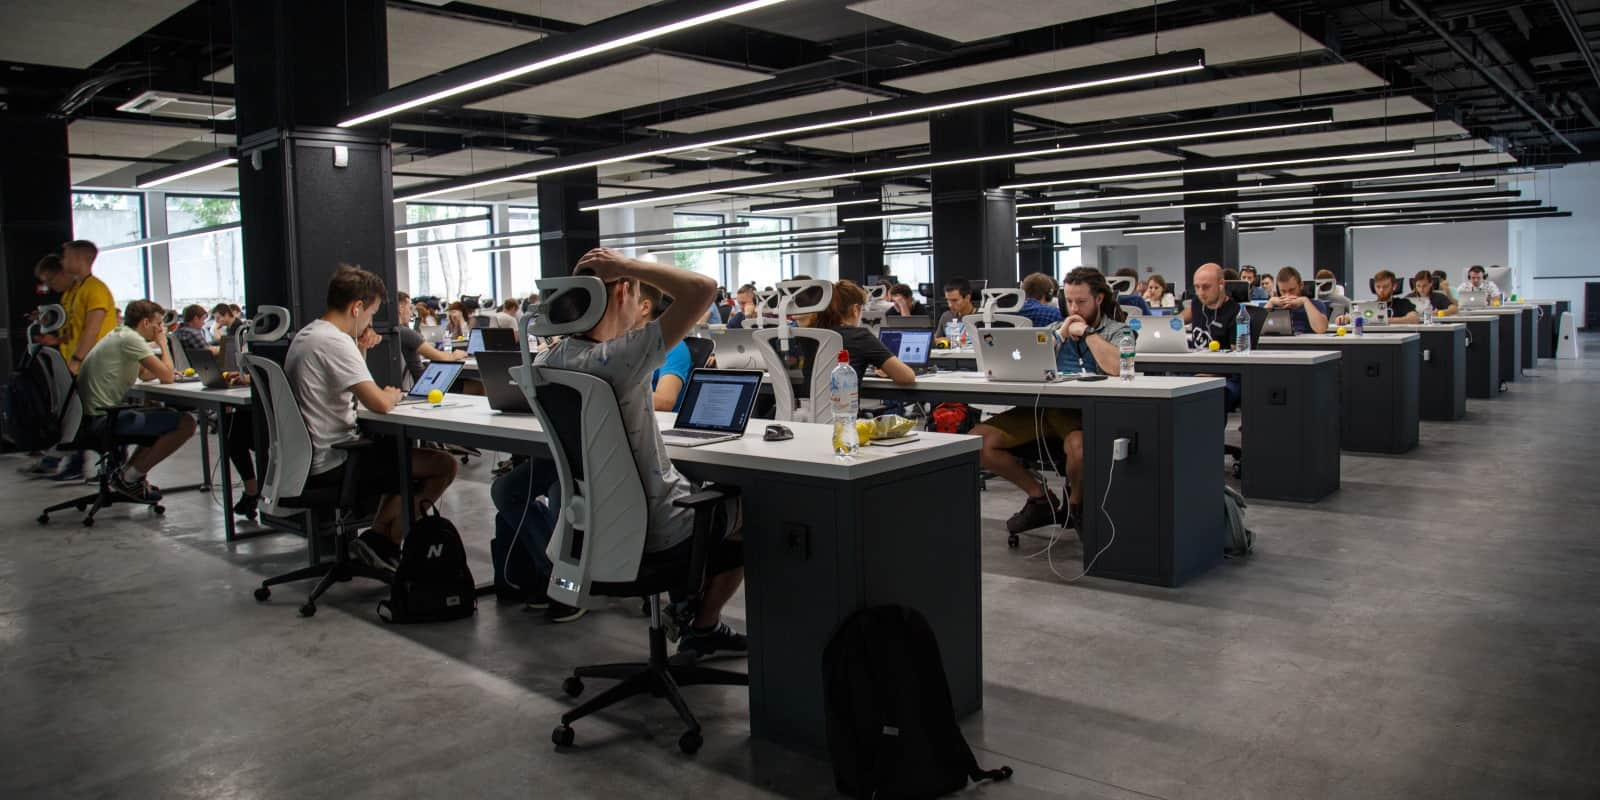 Rows of desks & computer workers in the office of a startup company